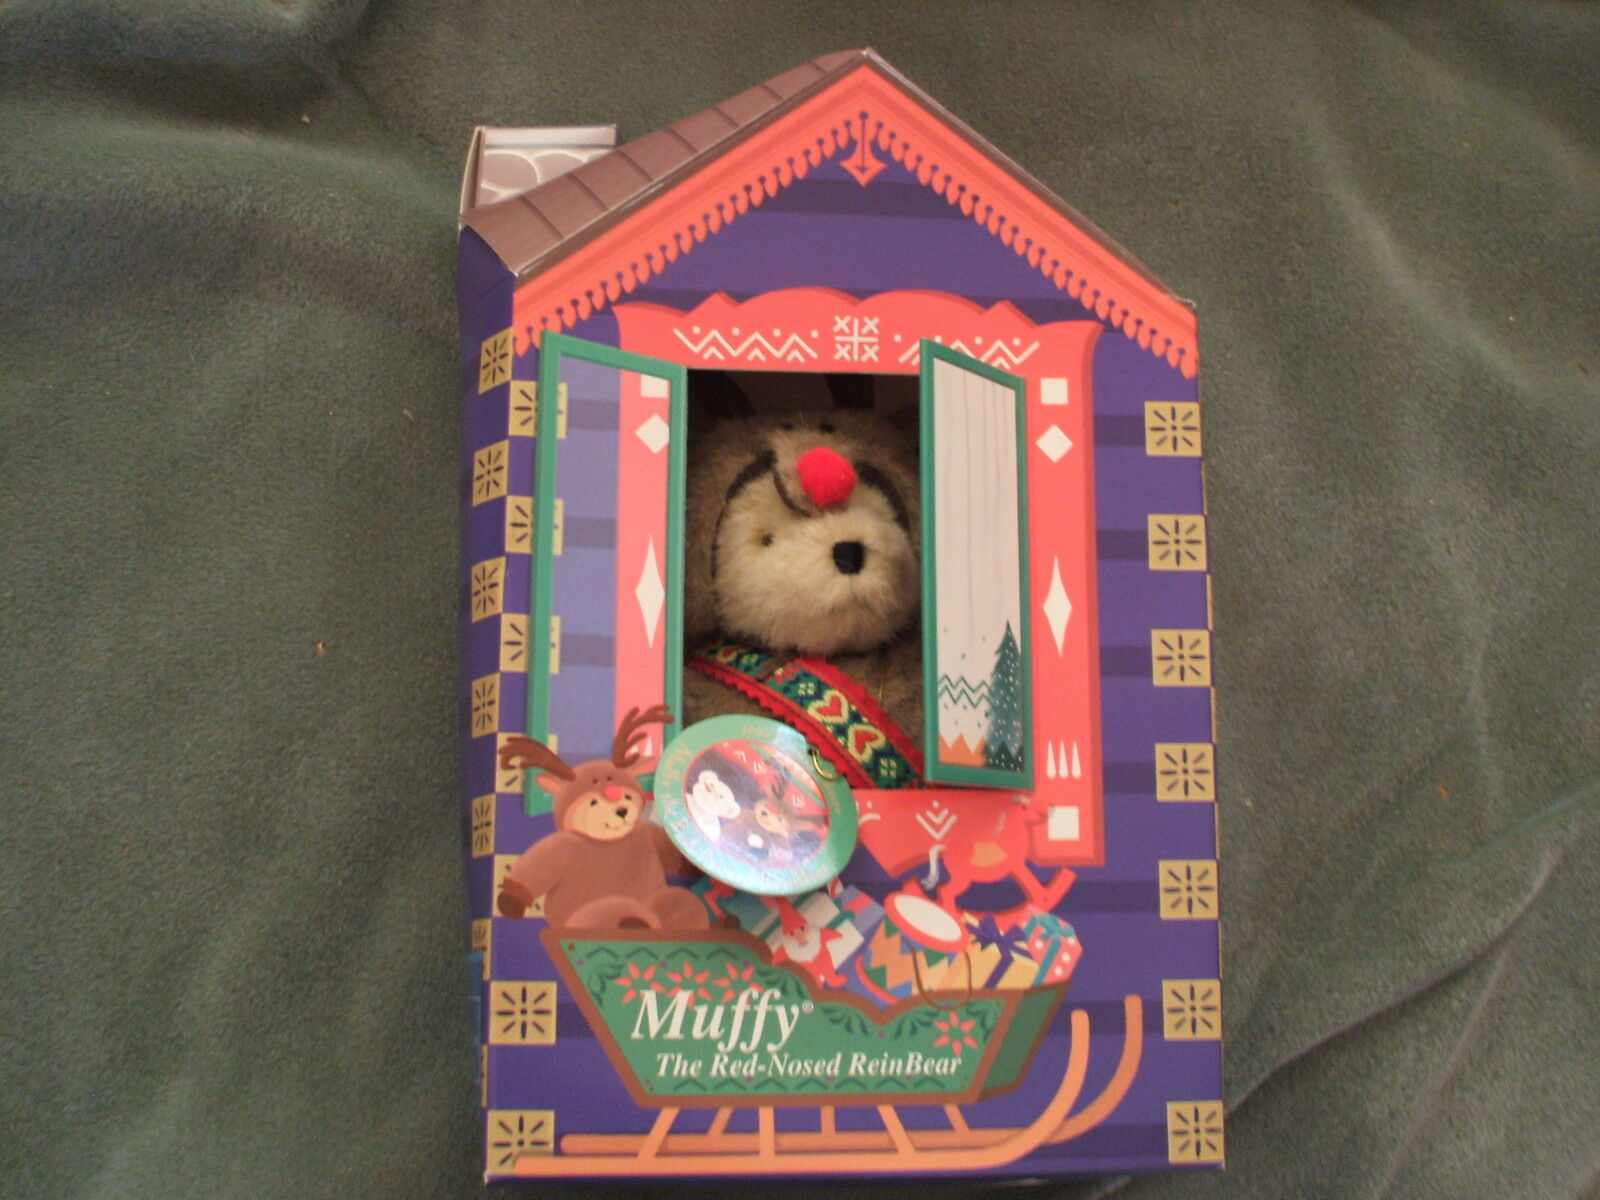 NABC - Muffy VanderBear - LE Christmas - Muffy the Red-nosed Reinbear - in box